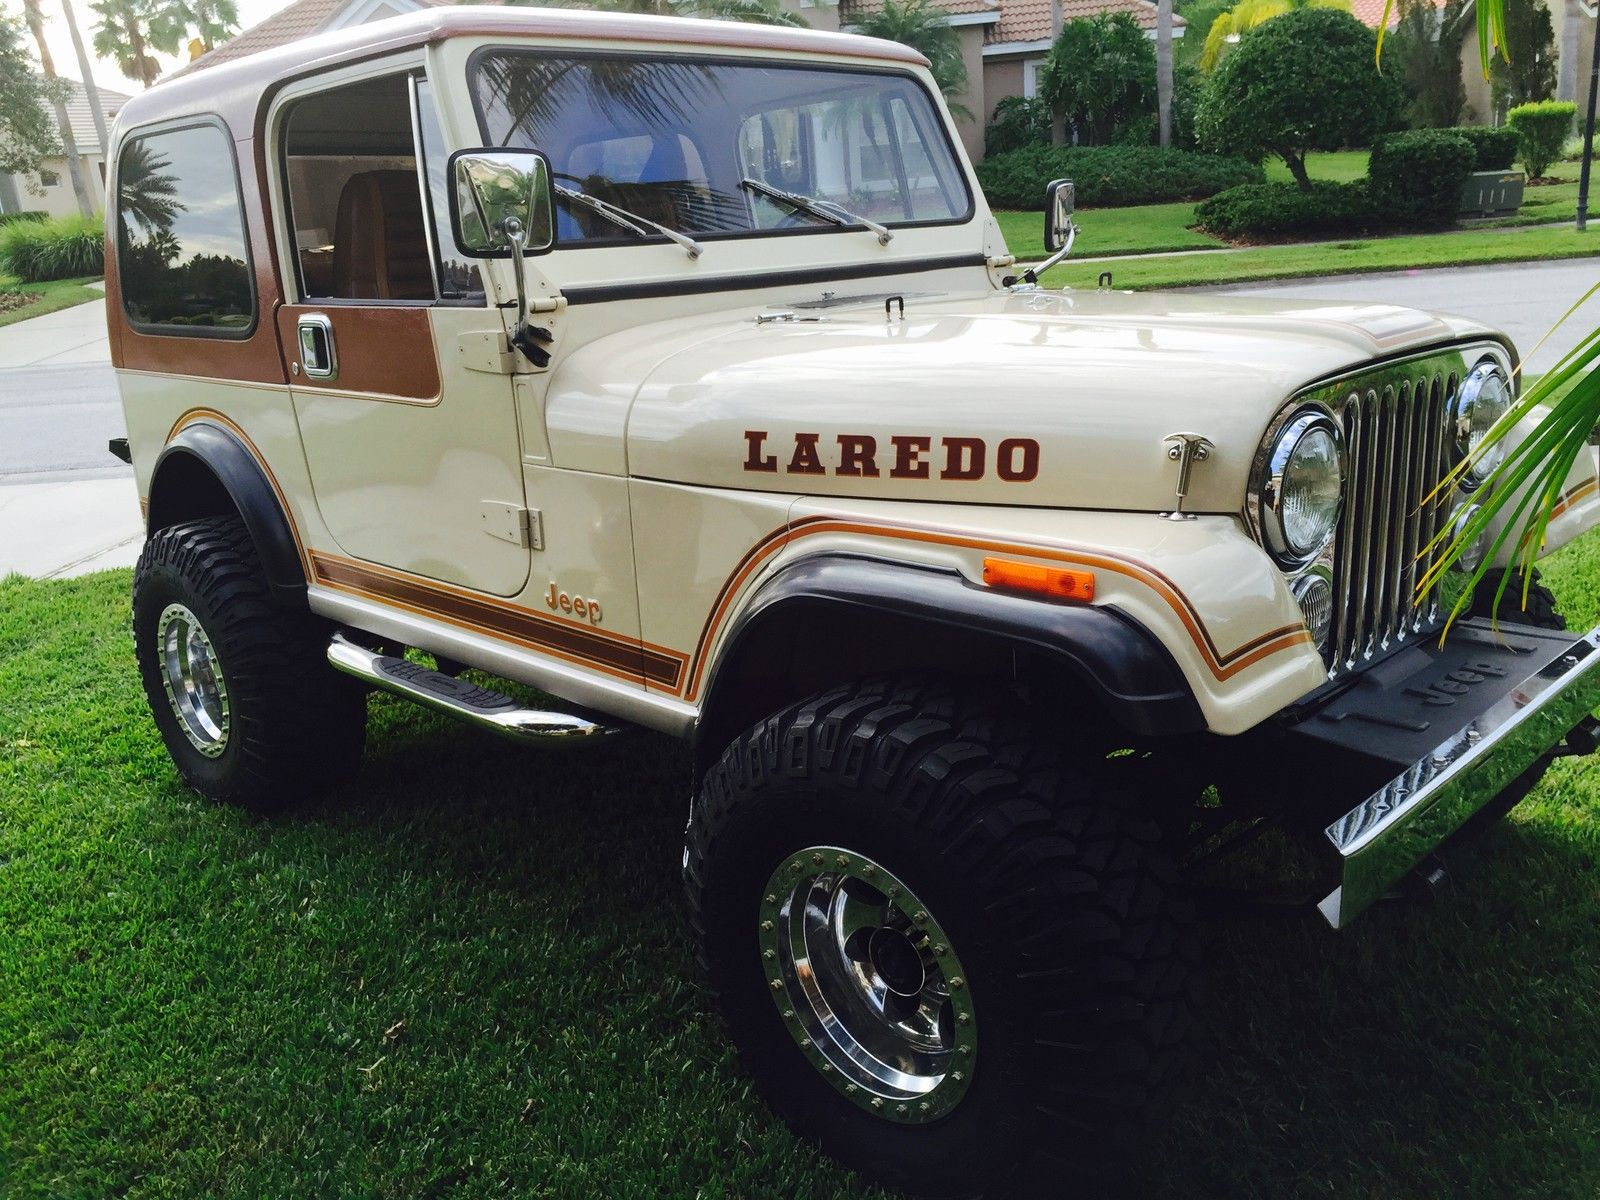 Jeep Cj7 1984 Laredo 37k Original Miles Exceptional